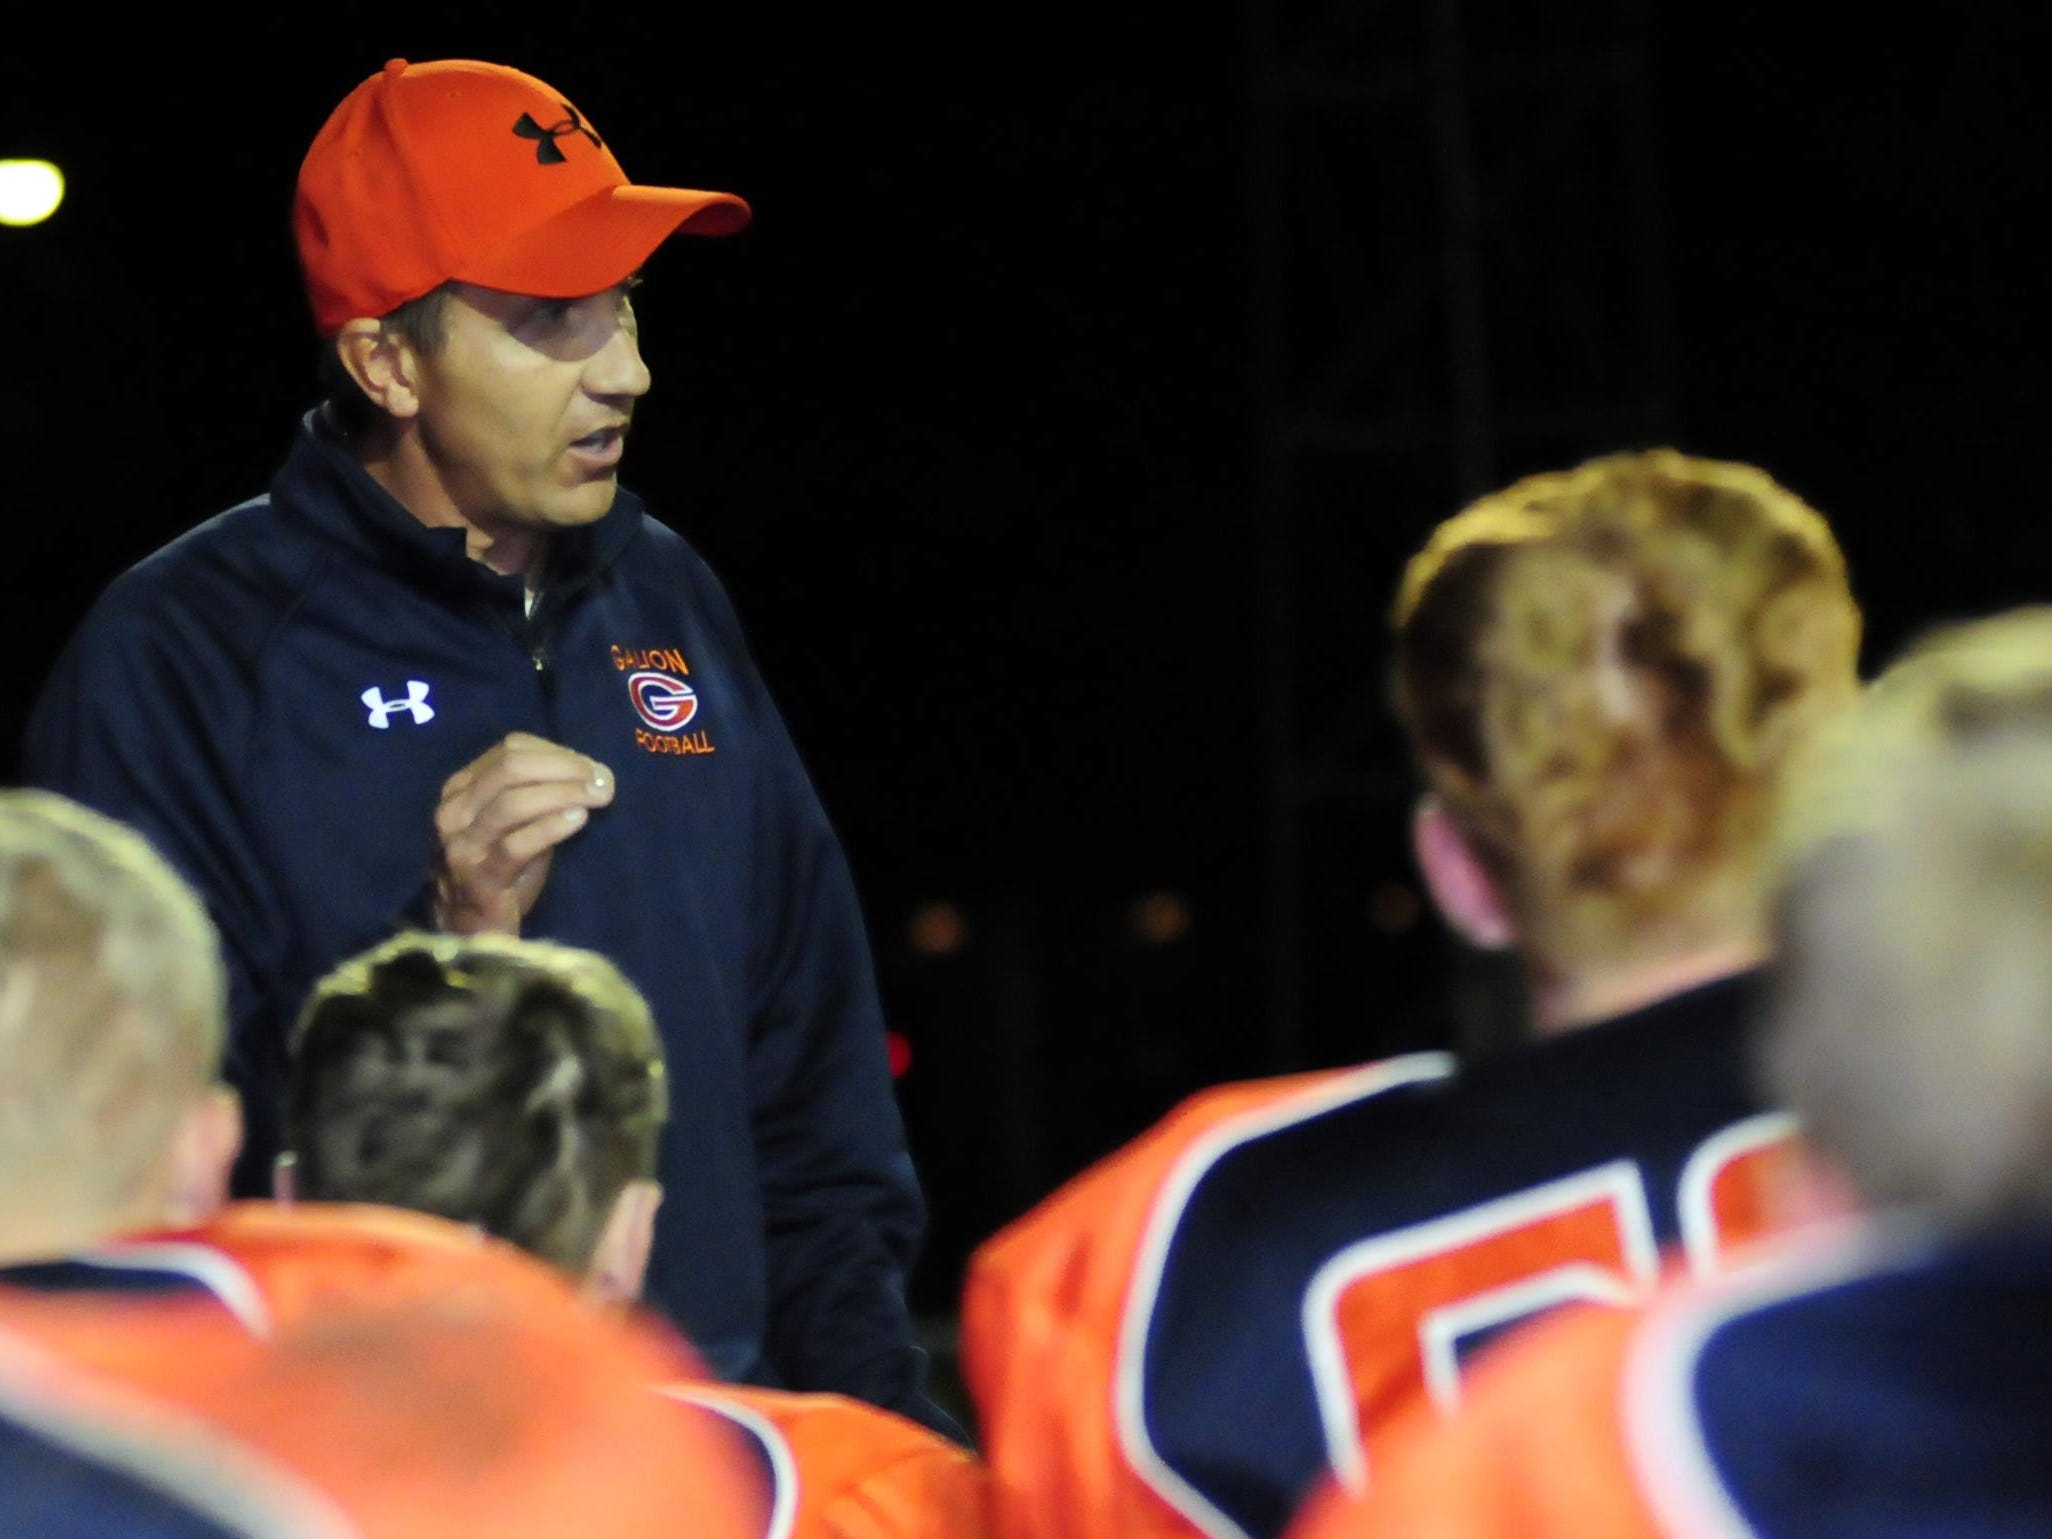 Galion coach Chris Hawkins talks to his team after a 50-35 win in 2013.